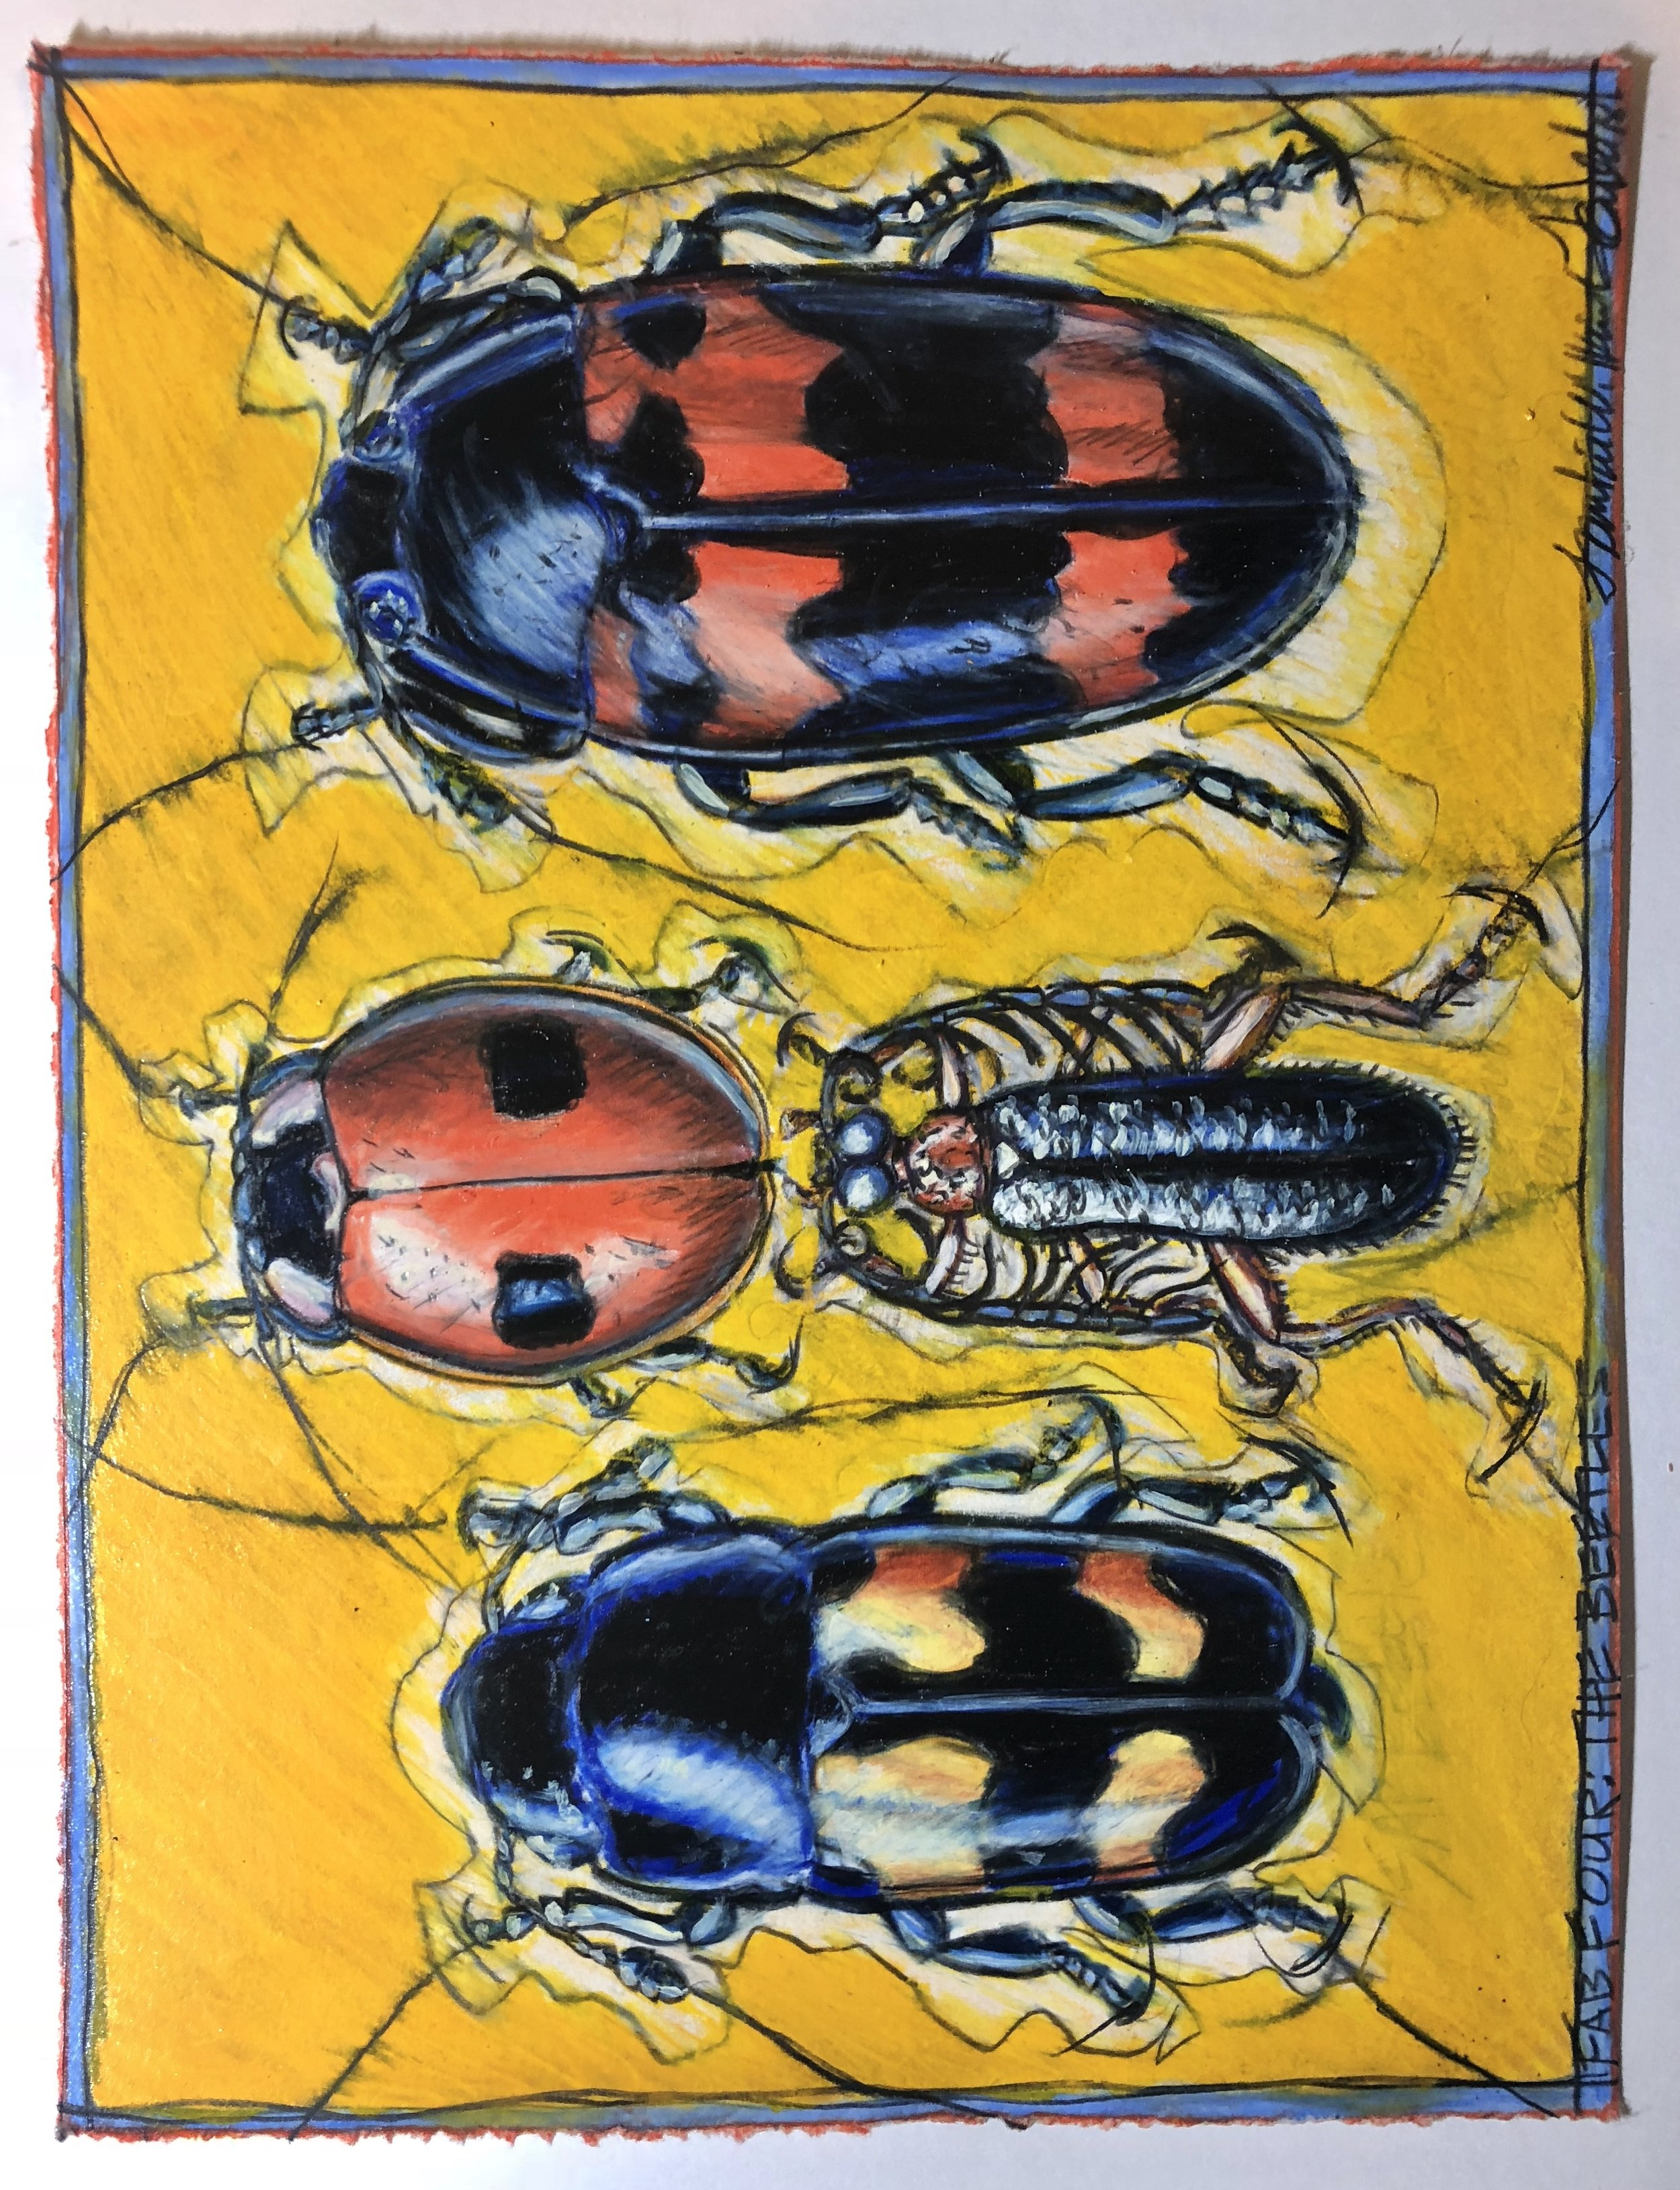 """Frankie Gould, """"Fave Four: The Beetles,"""" prismacolor pencil on paper, 16 x 12 in"""